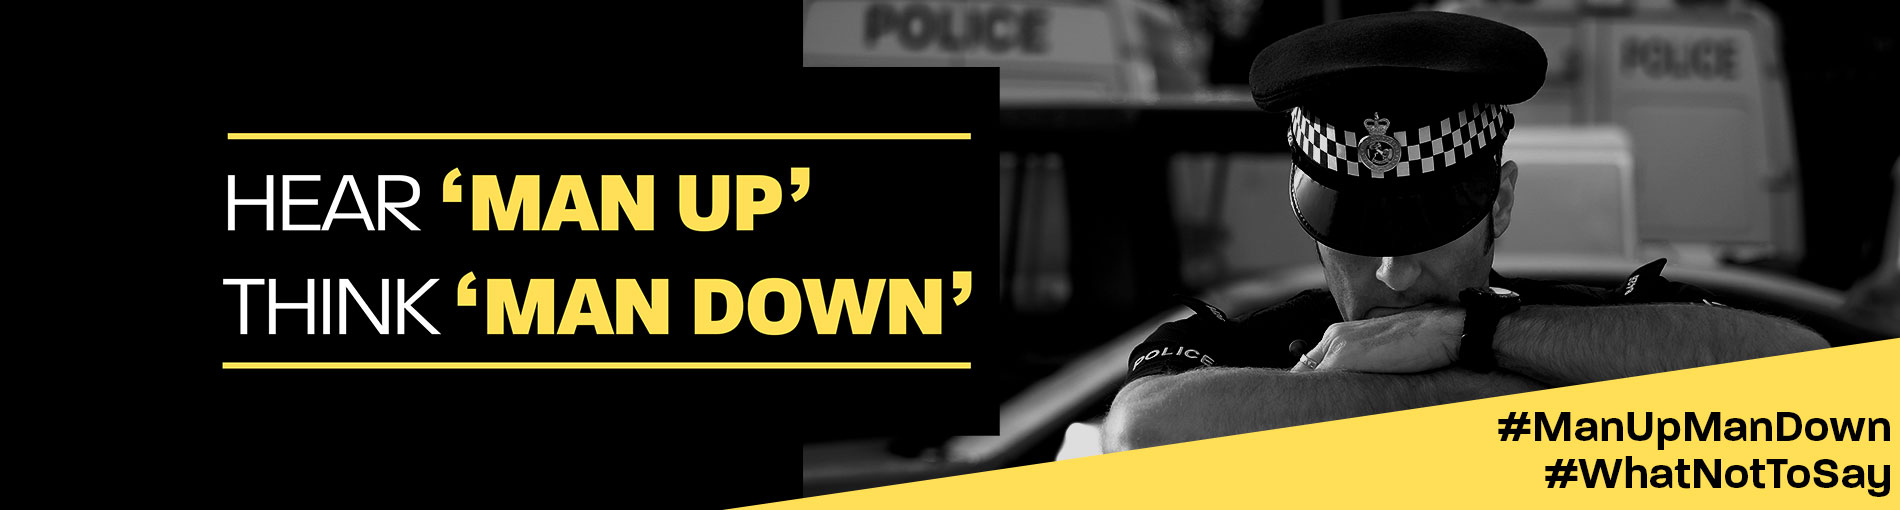 Man up man down campaign banner